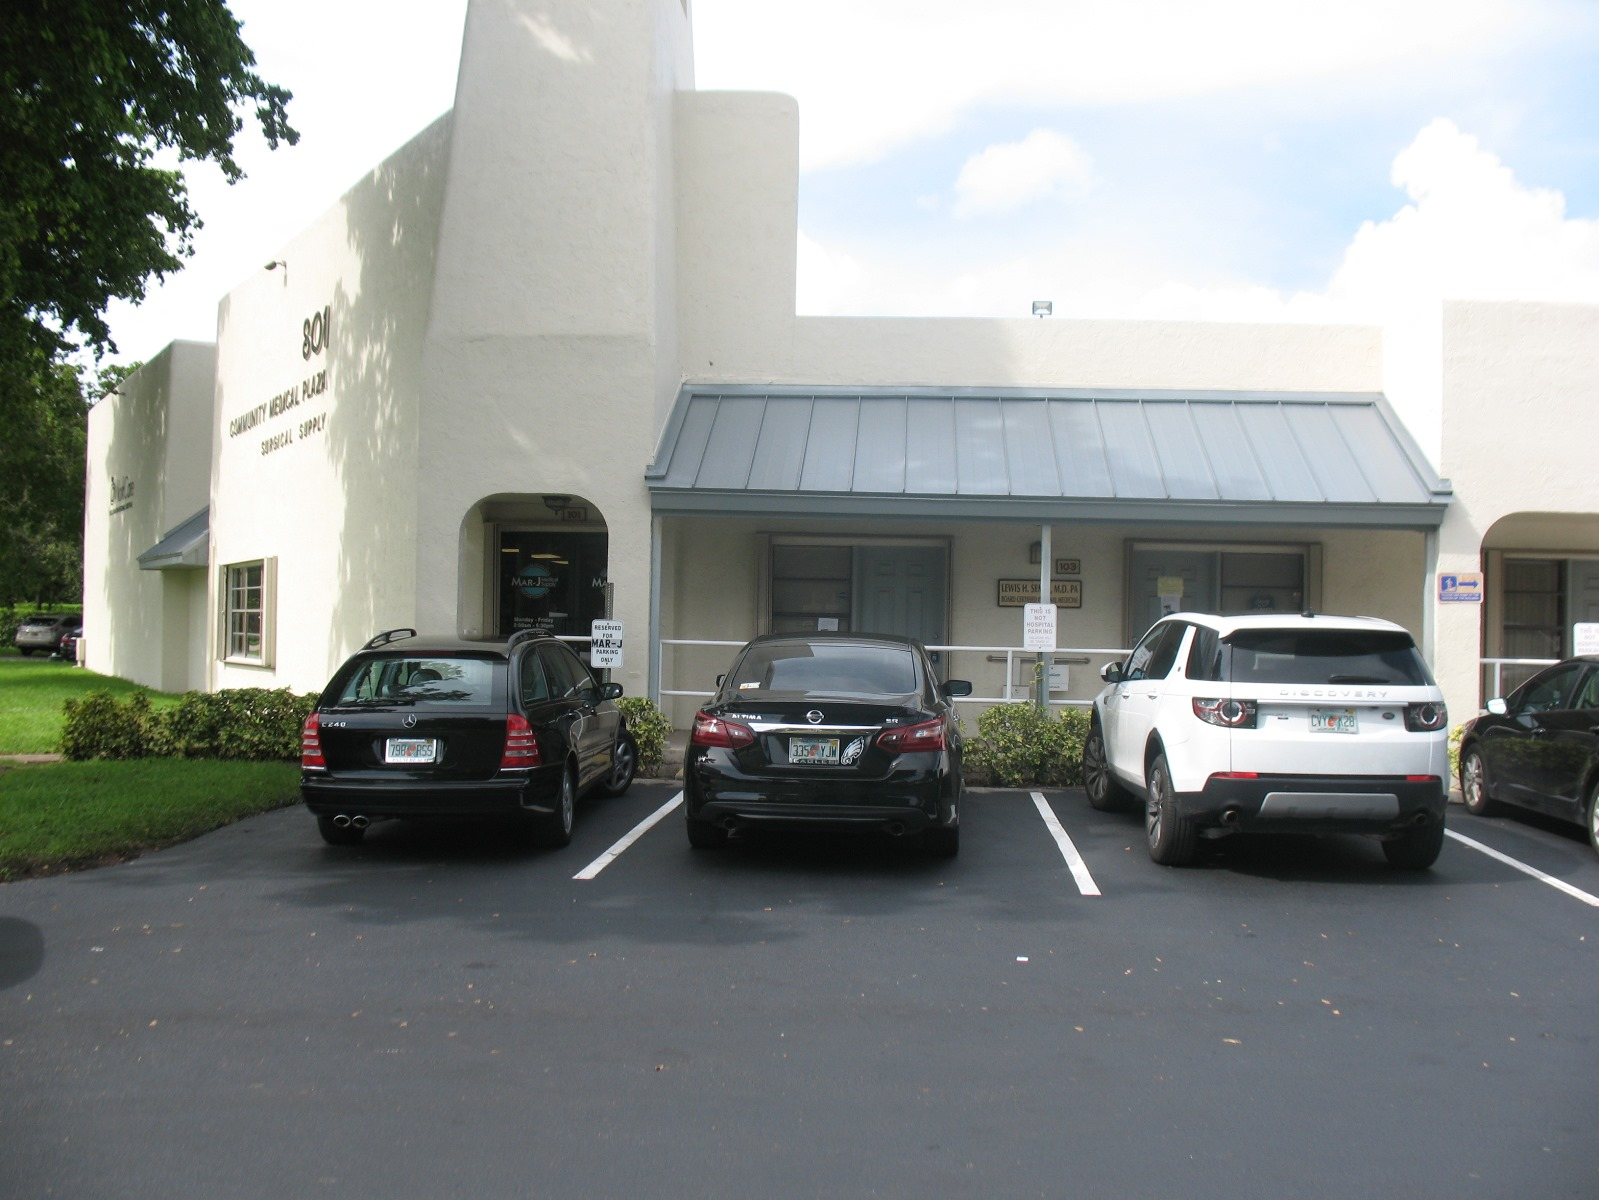 South Florida Commercial Real Estate for Lease - 801 Meadows Road